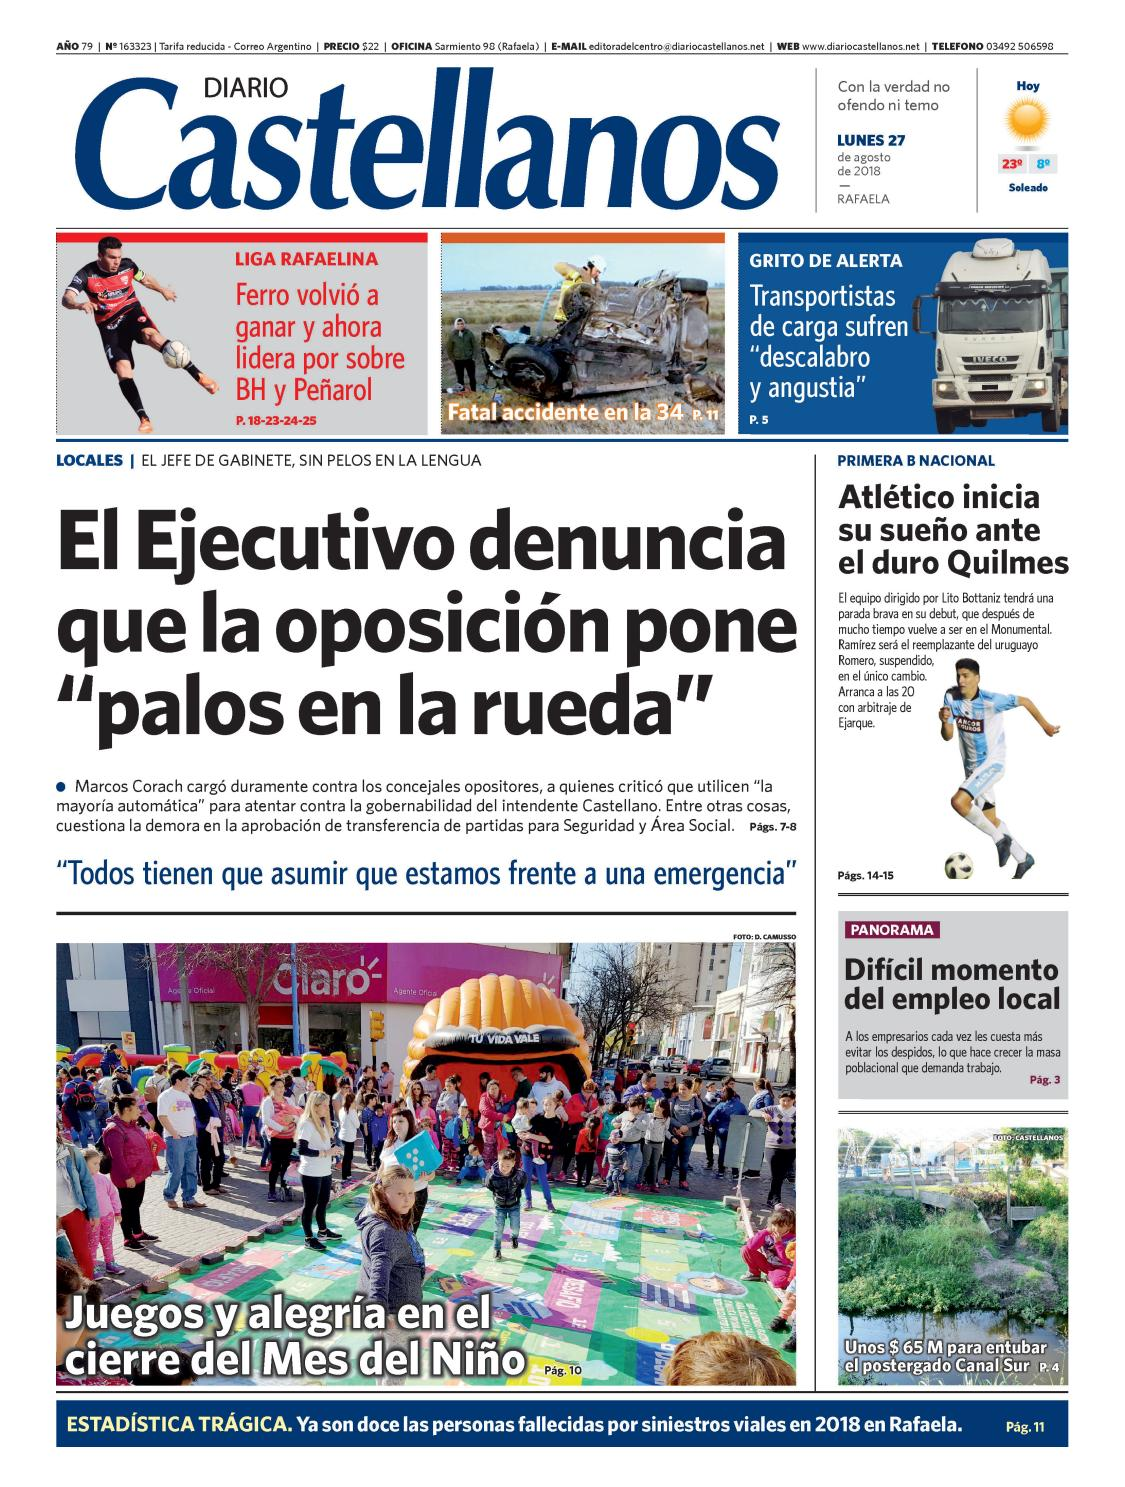 Diario Castellanos 27 08 18 by Diario Castellanos - issuu